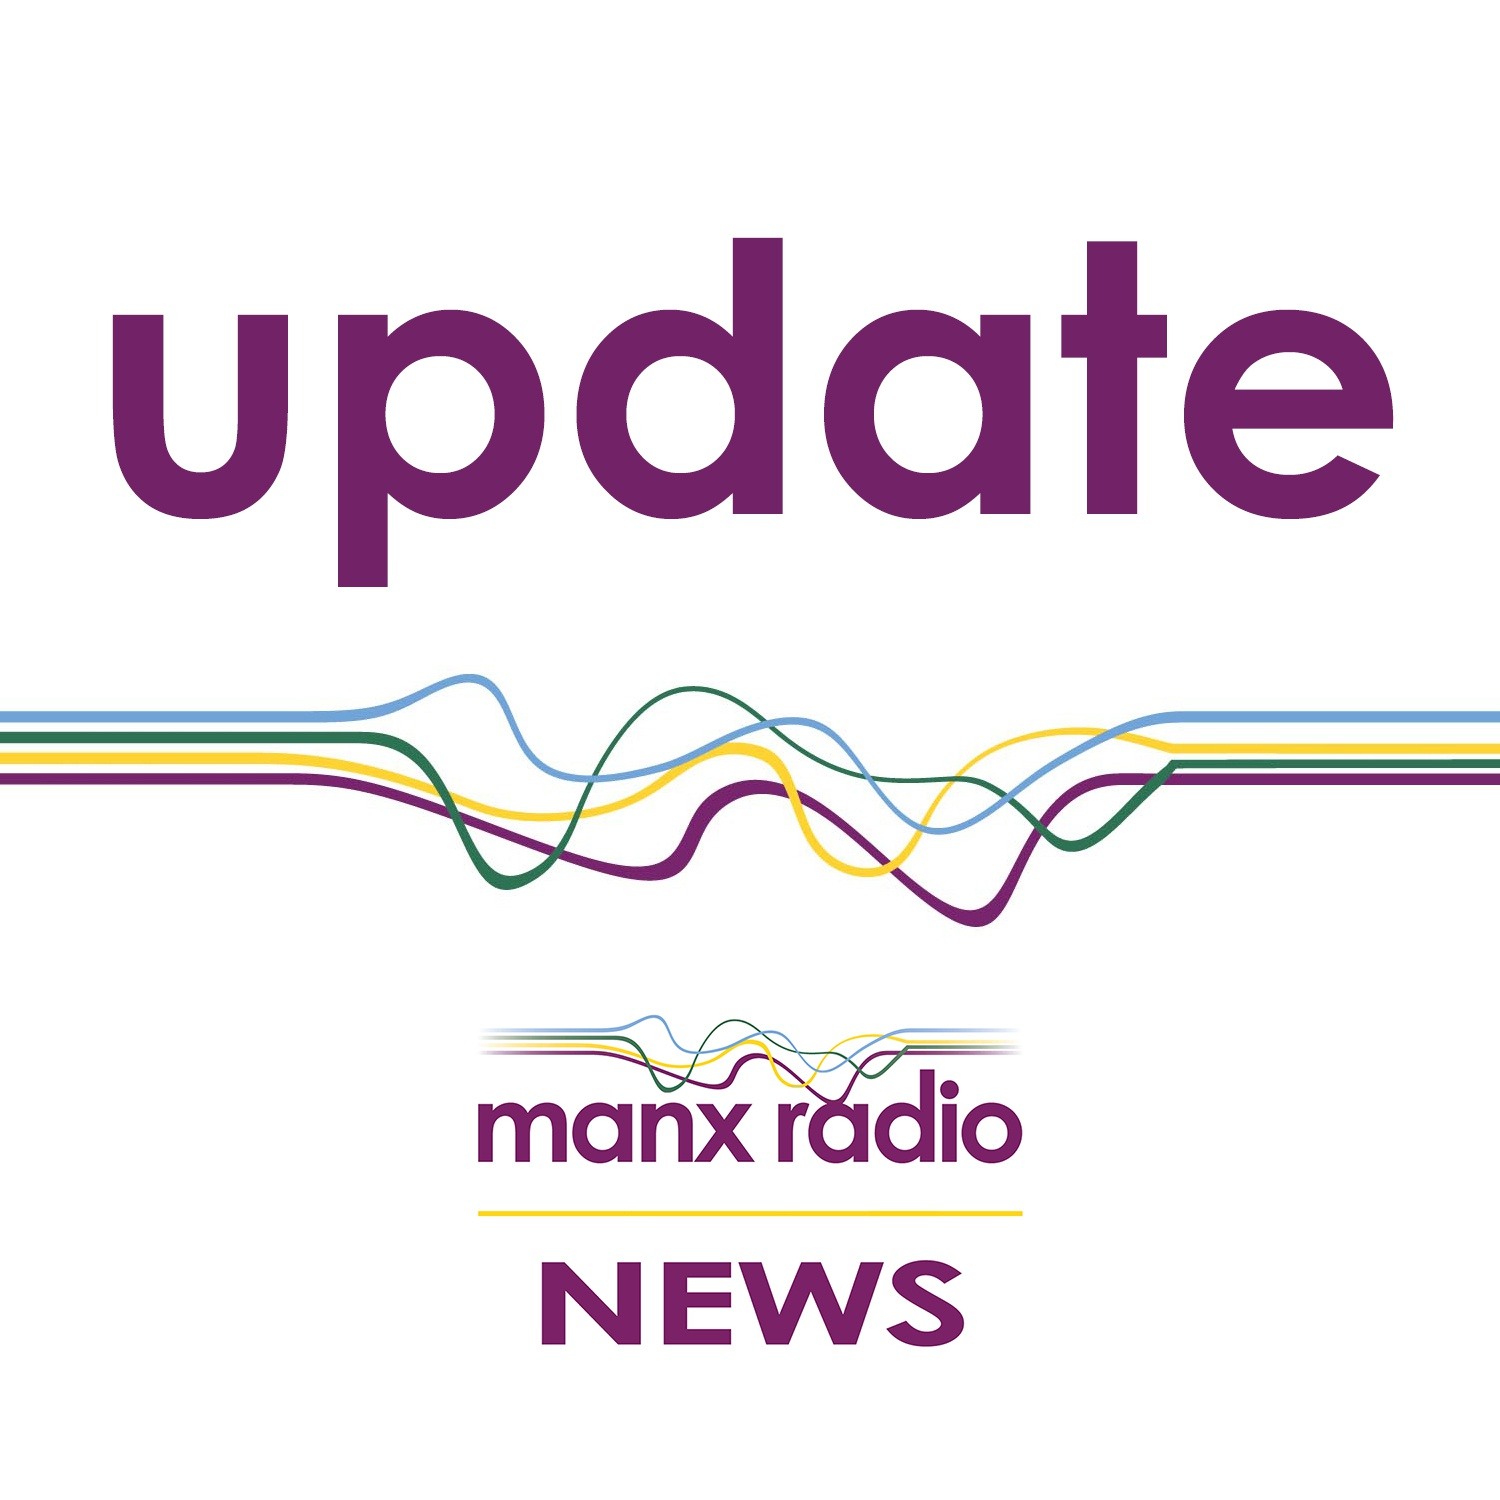 Manx Radio - Update